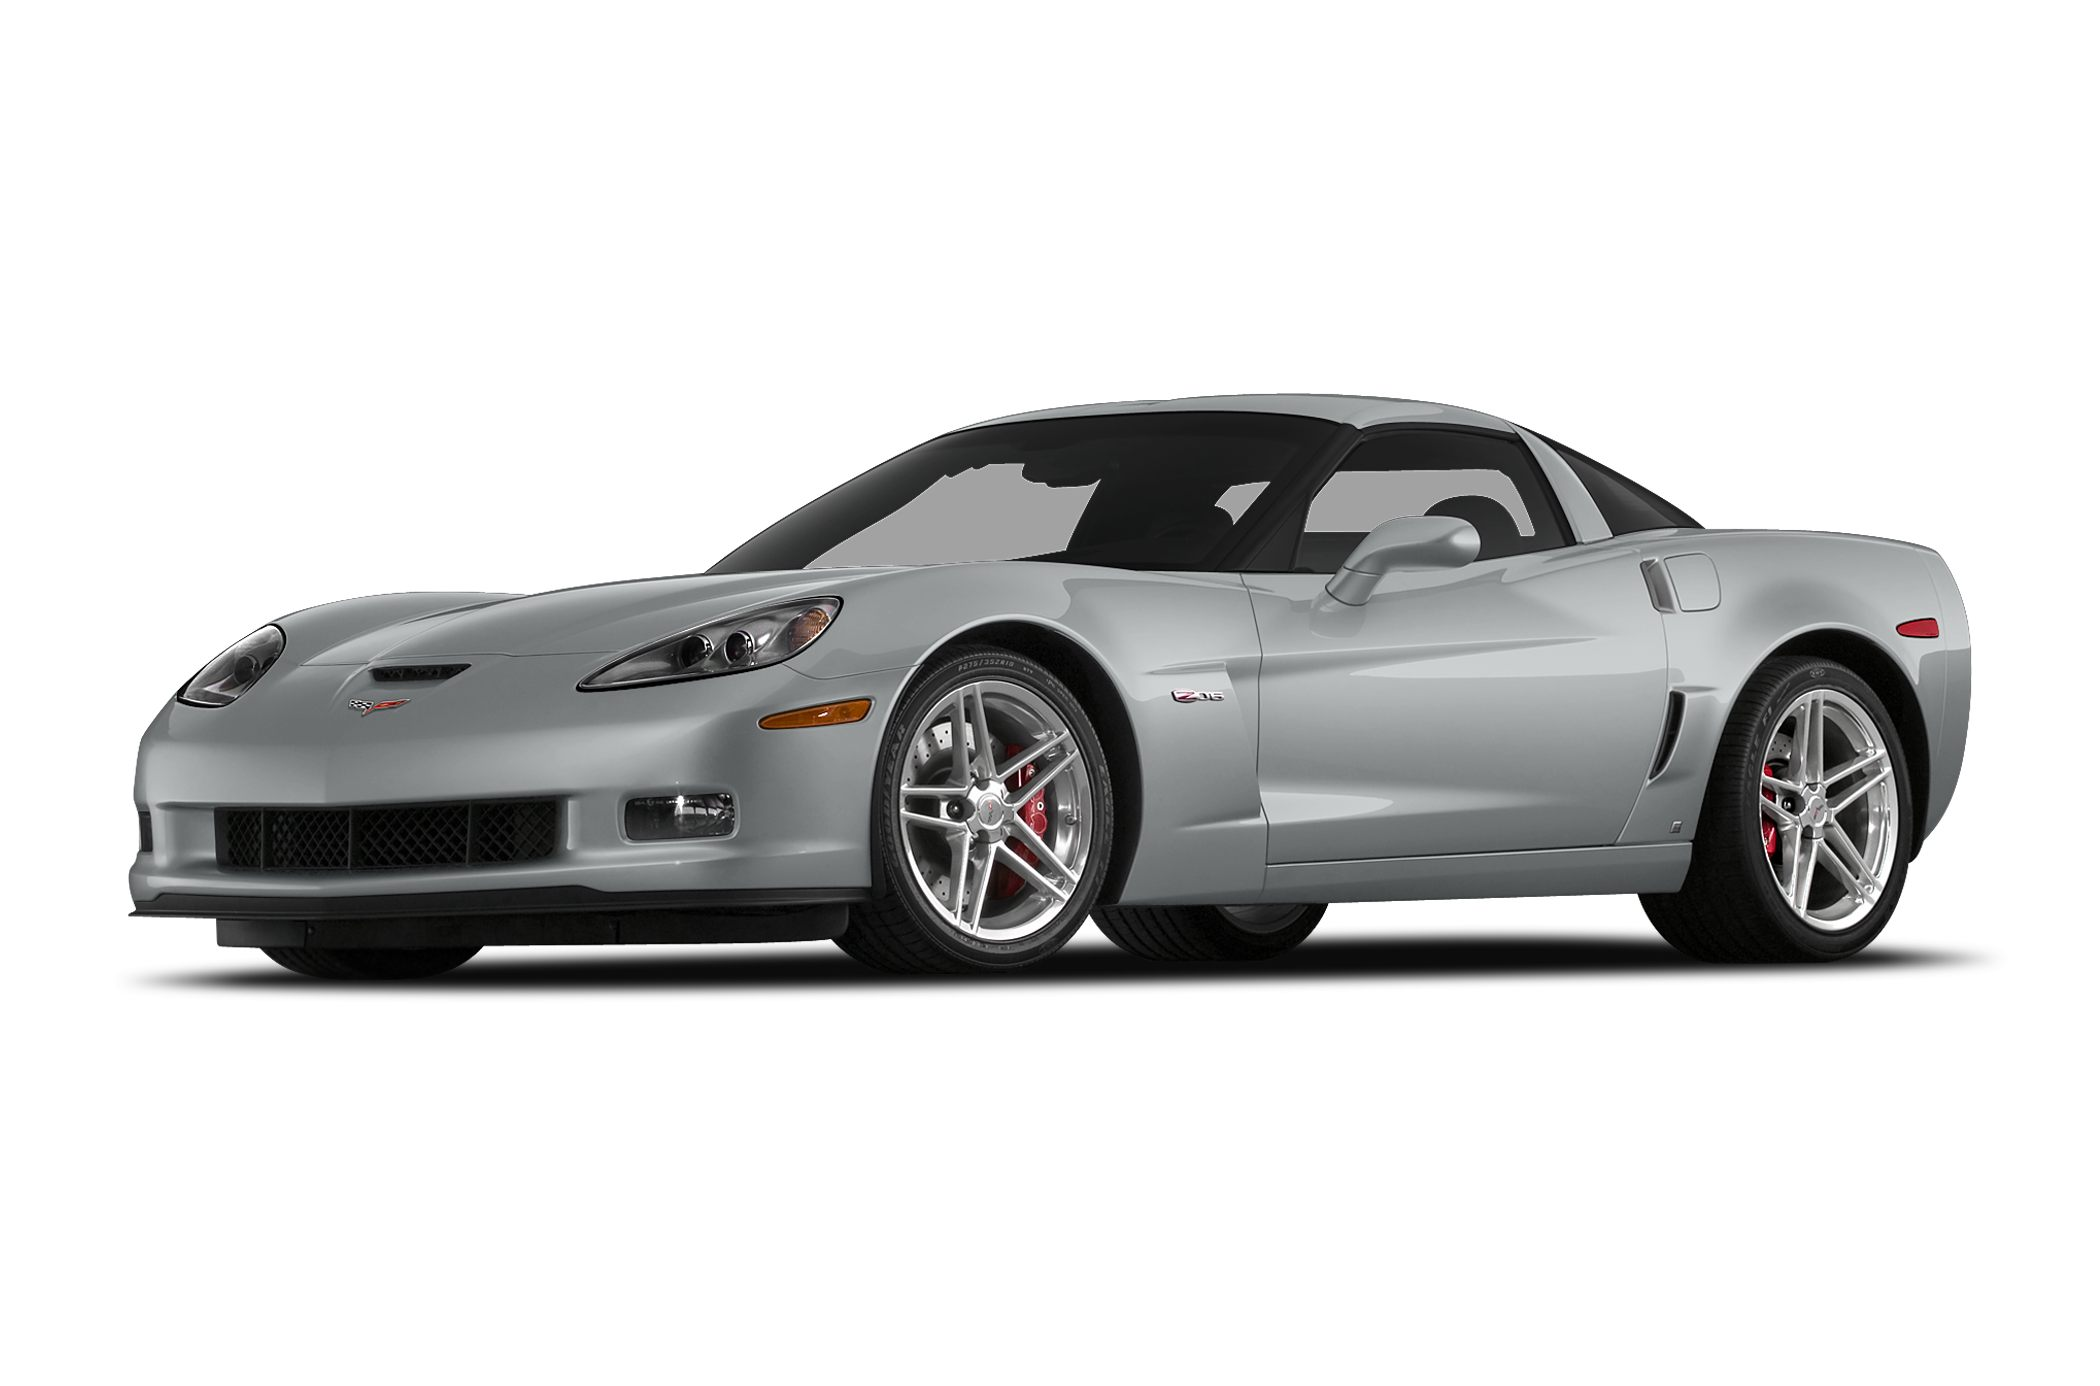 2009 Chevrolet Corvette Z06 Coupe for sale in Whitehouse for $0 with 35,852 miles